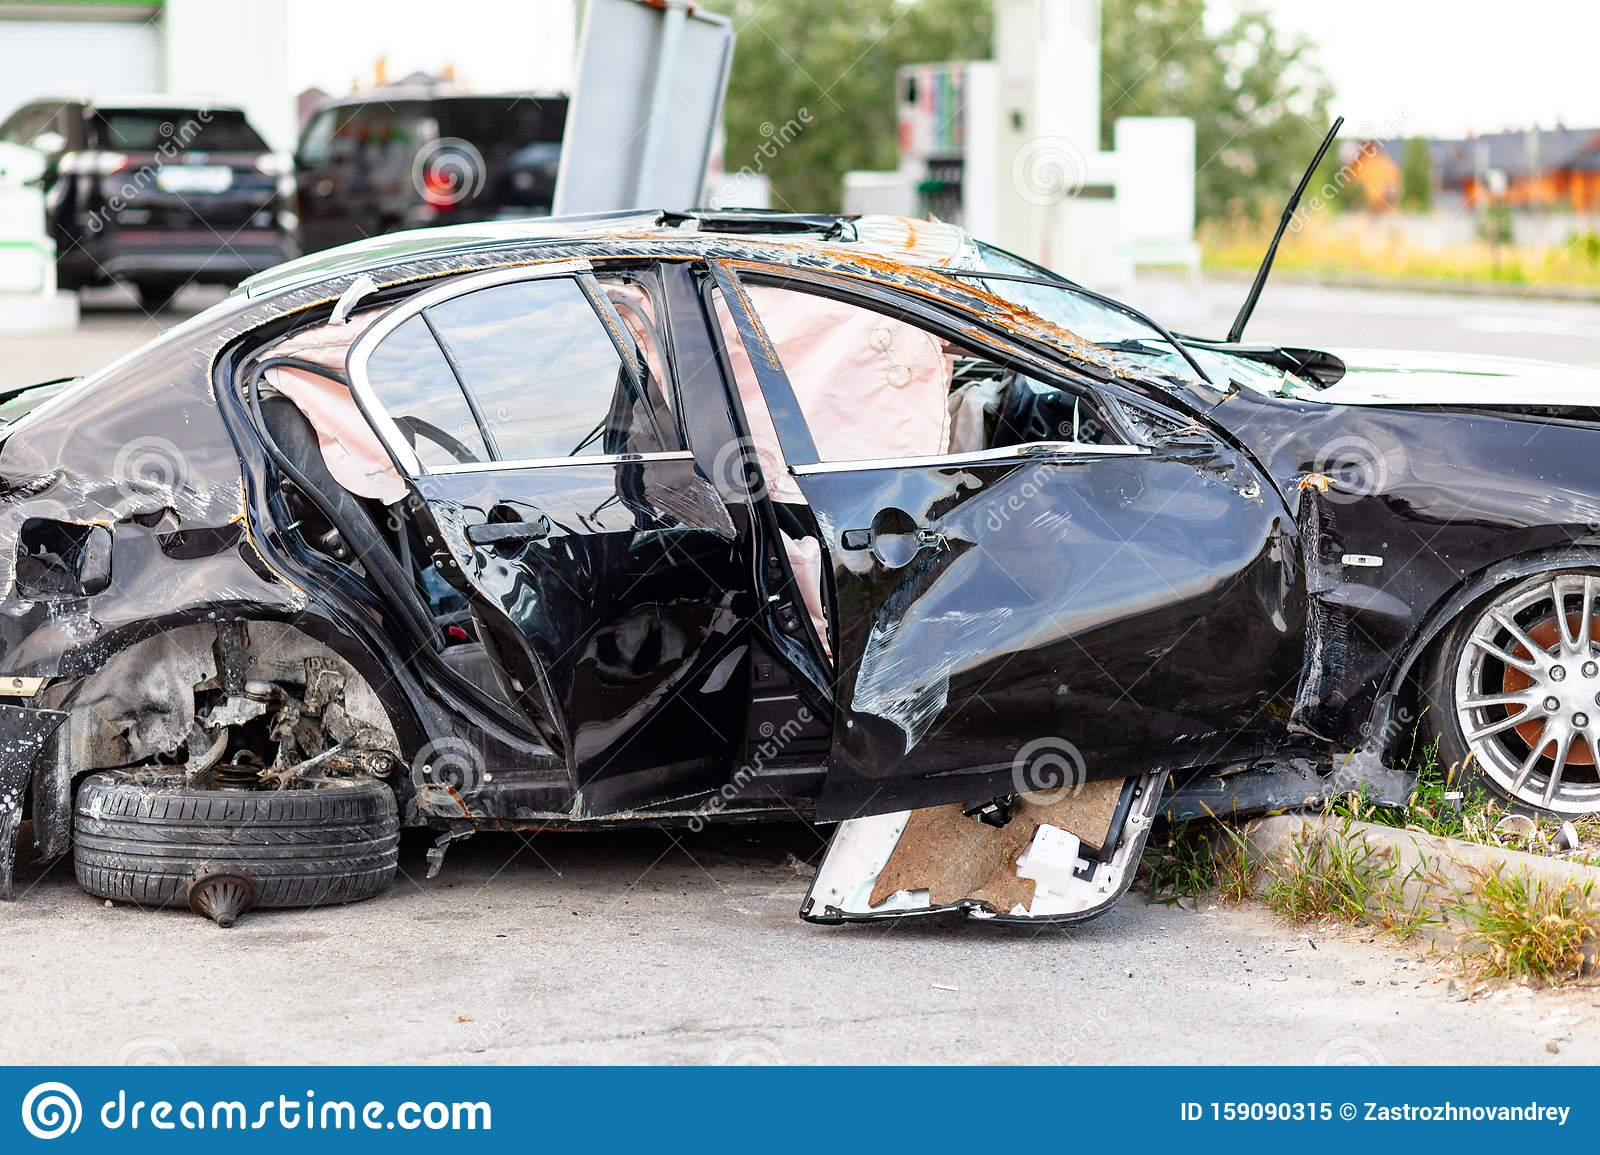 Wrecked Car On Side Of Highway Safety On Road Accident Or Crash Stock Image Image Of Bender Rescue 159090315